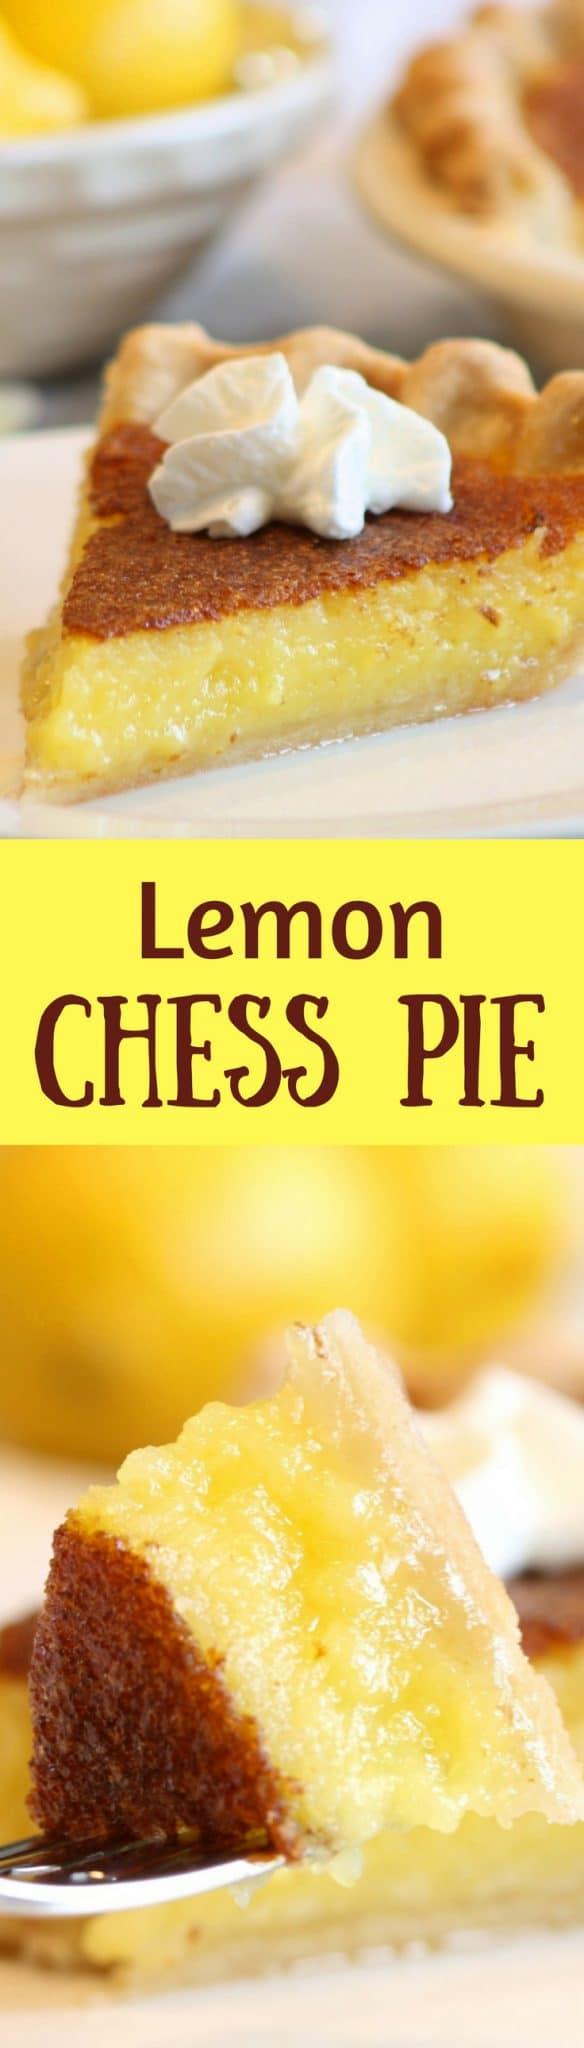 You never remove heed much almost Lemon Chess Pie but it rapidly made the transcend of our listing No. 10 – Lemon Chess Pie